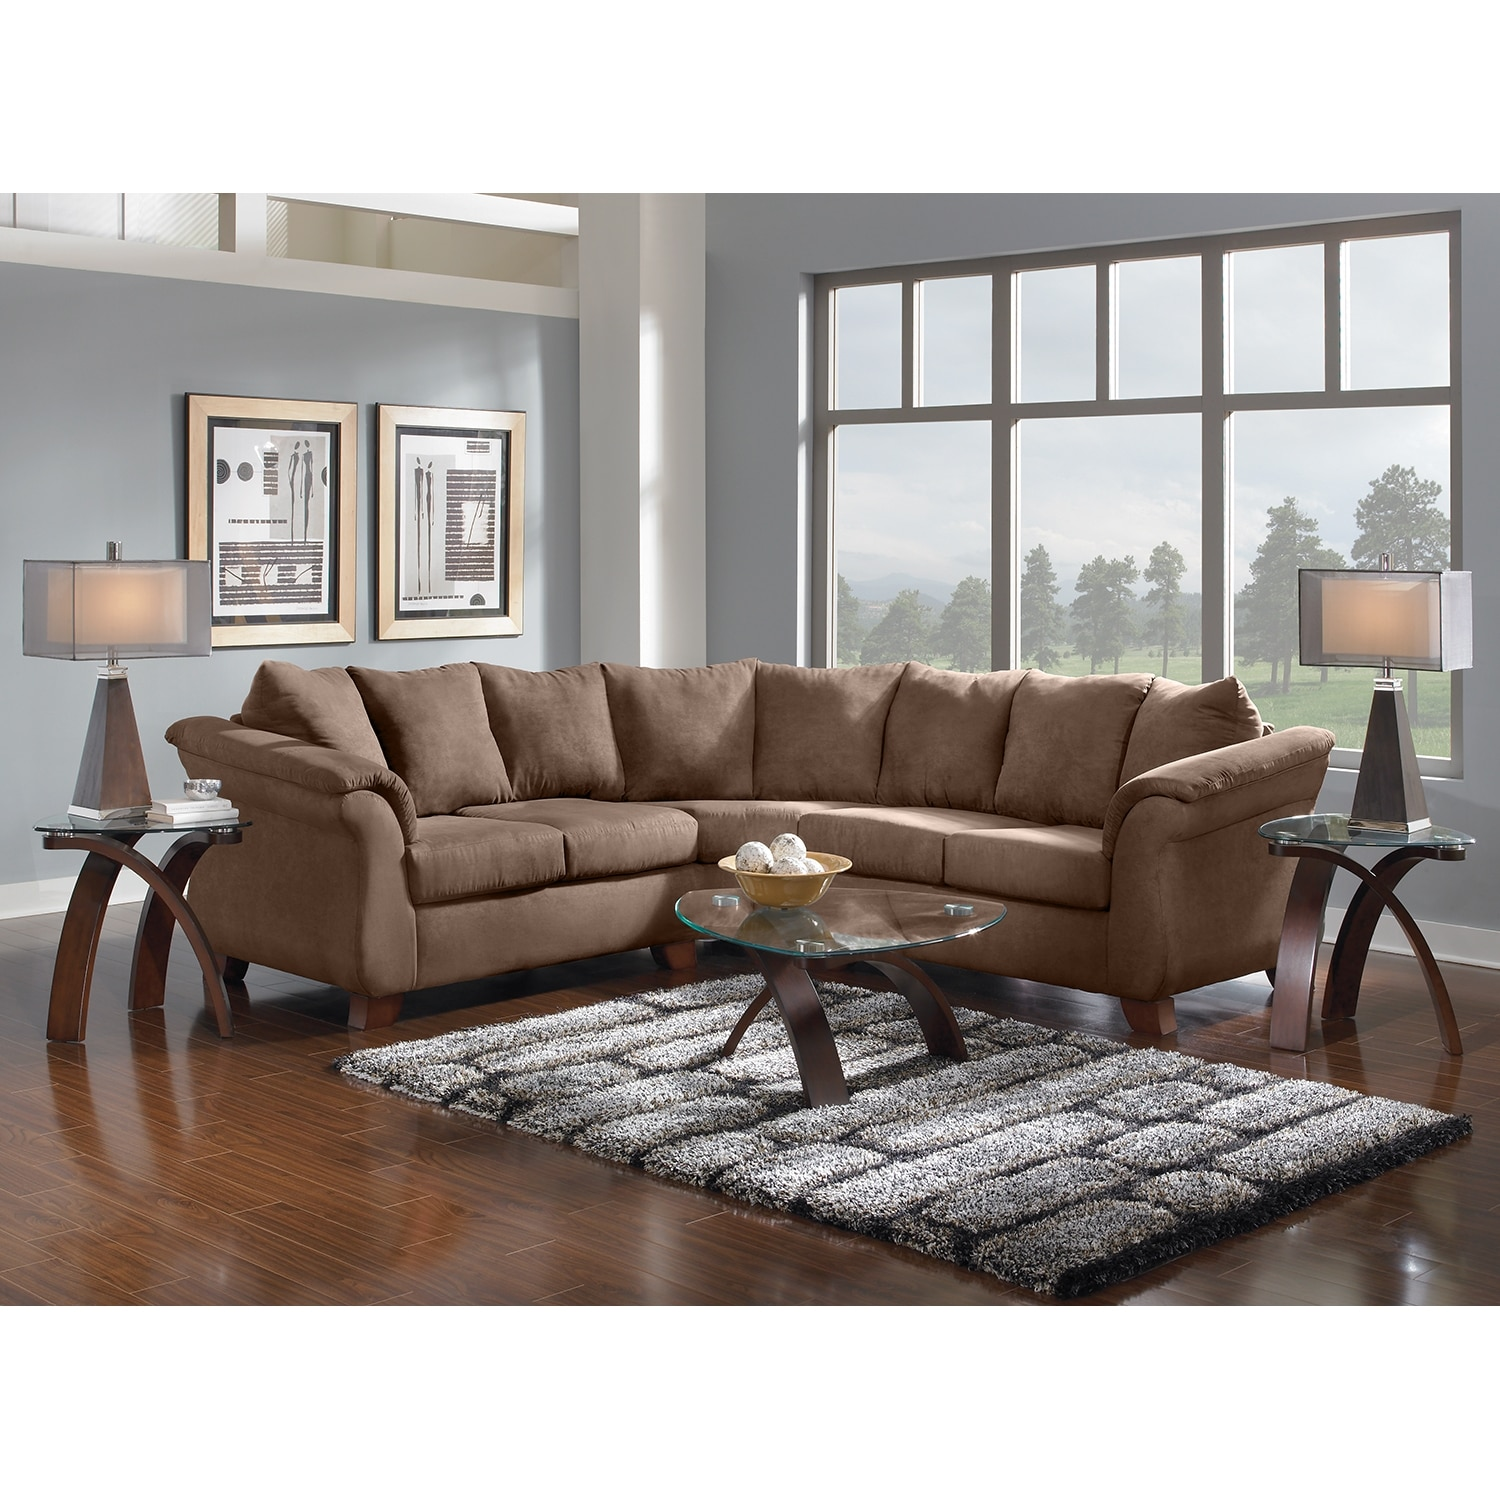 adrian 2 piece sectional taupe value city furniture. Black Bedroom Furniture Sets. Home Design Ideas